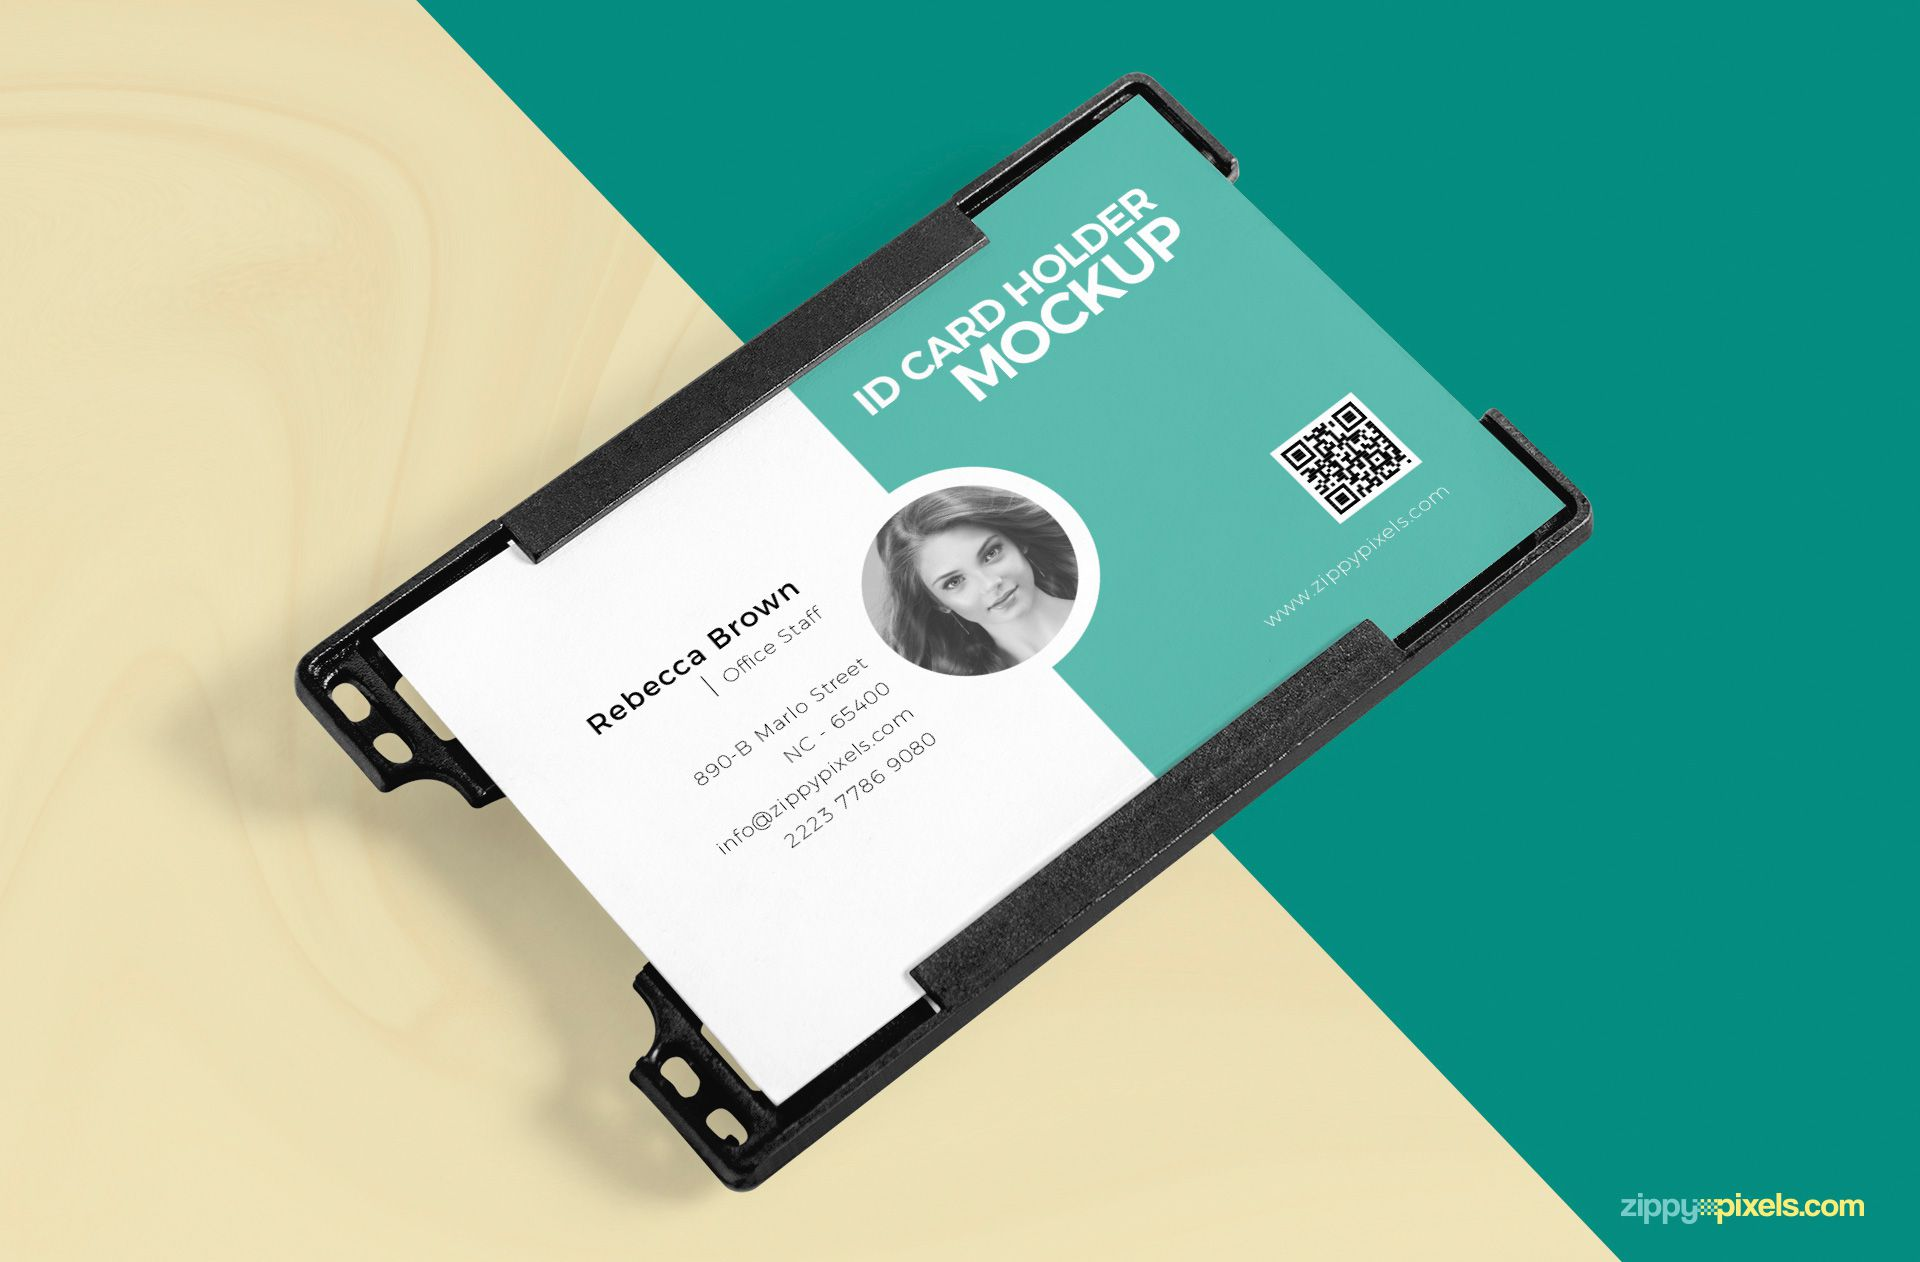 006 Formidable Id Badge Template Free Online Example Full